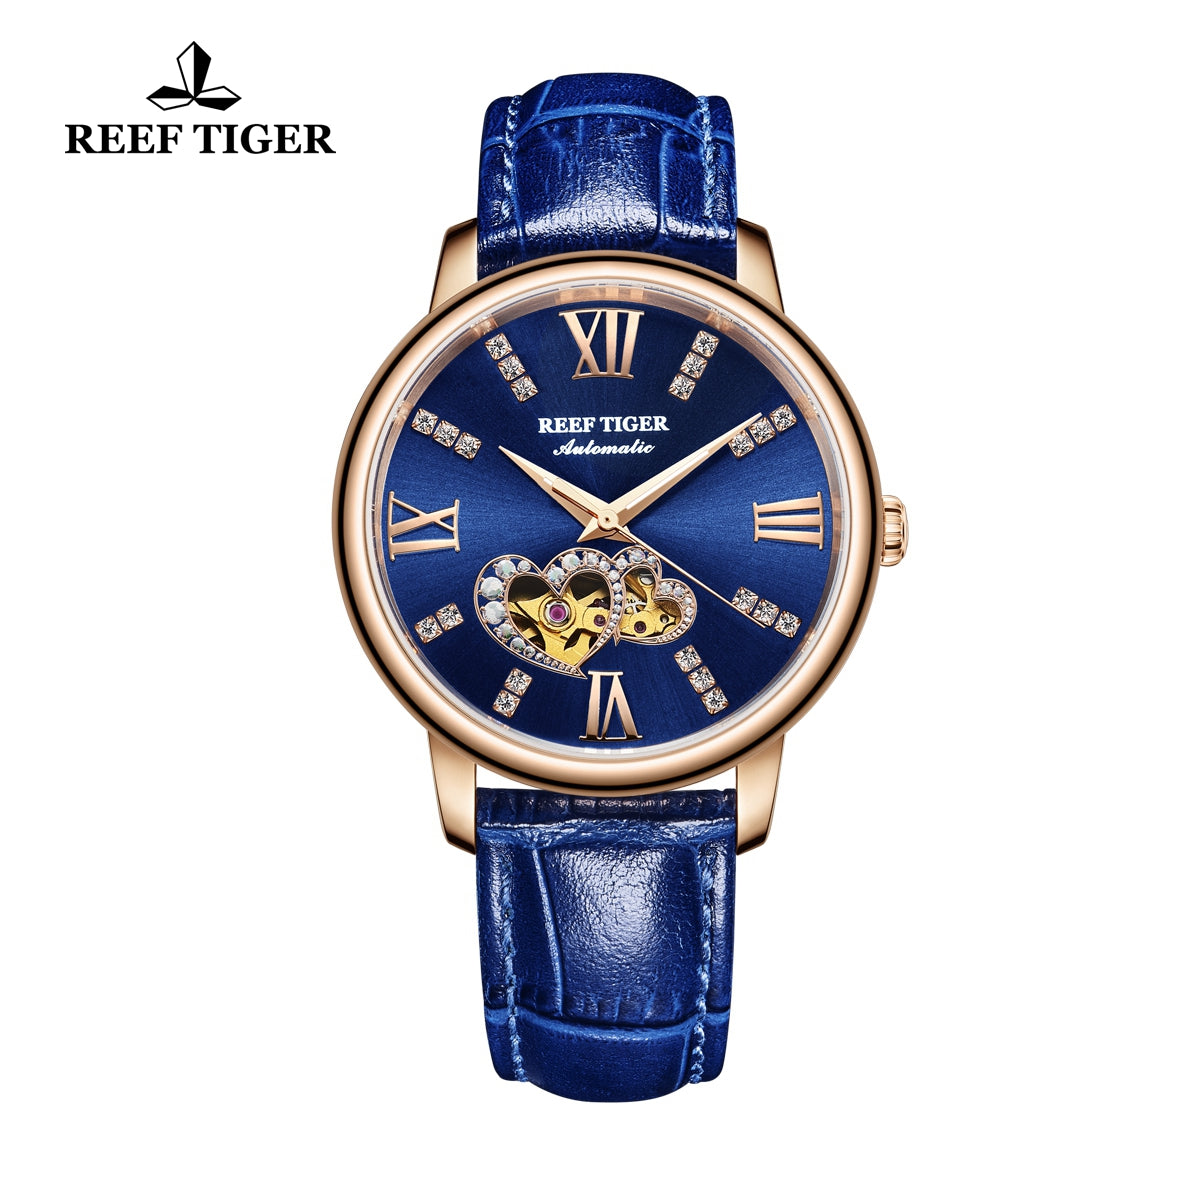 Reef Tiger Rose Gold Automatic Leather Strap with Blue Dial Watch RGA1580